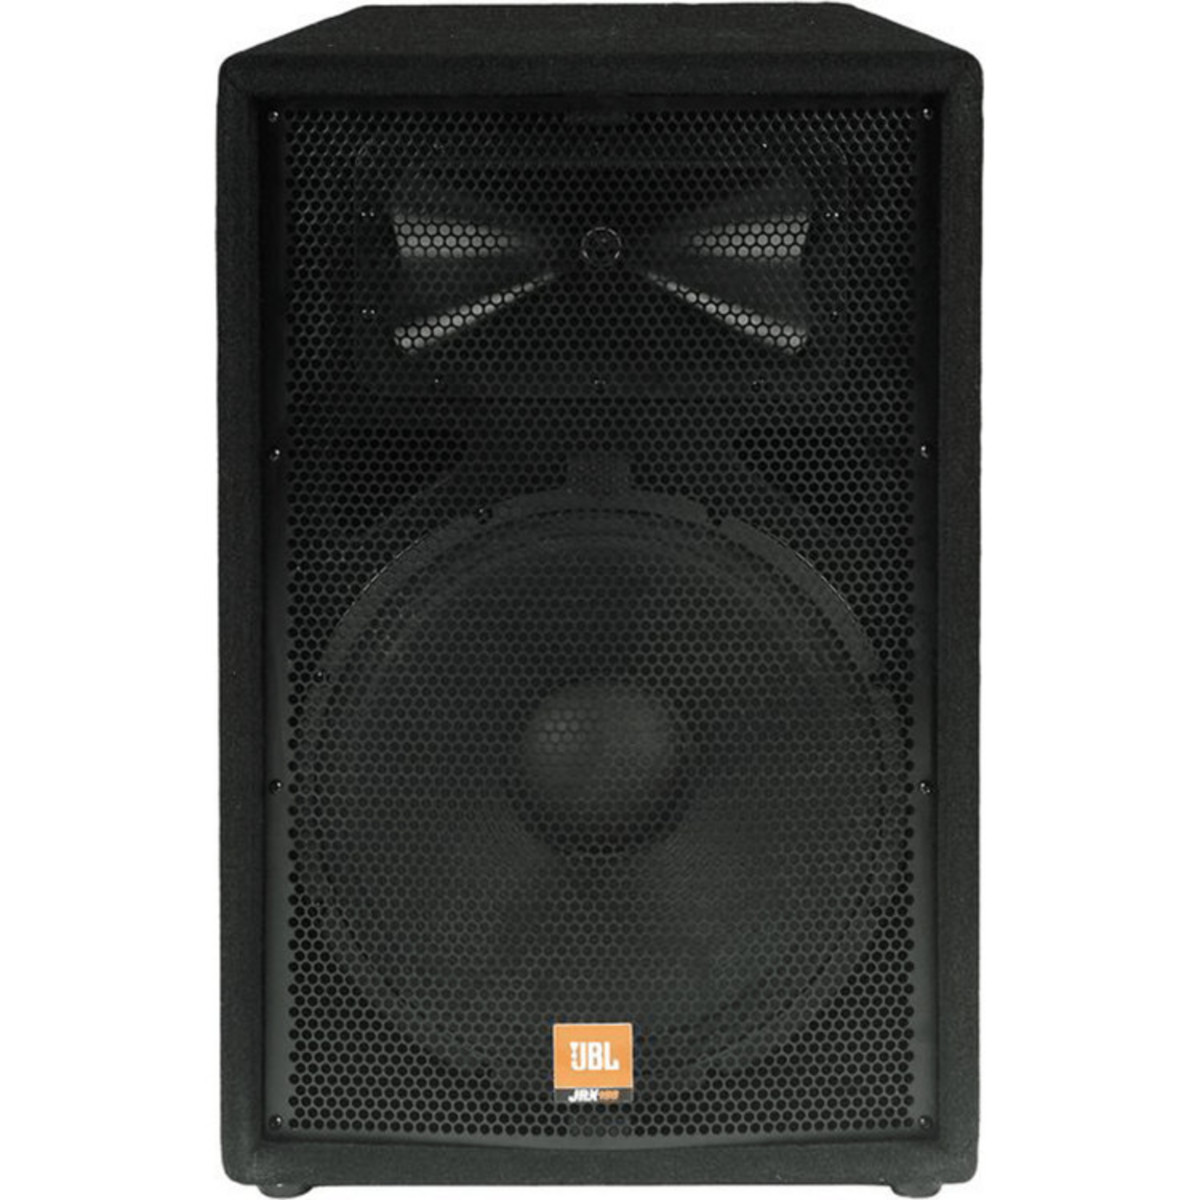 JBL JRX115 WINDOWS 8 X64 DRIVER